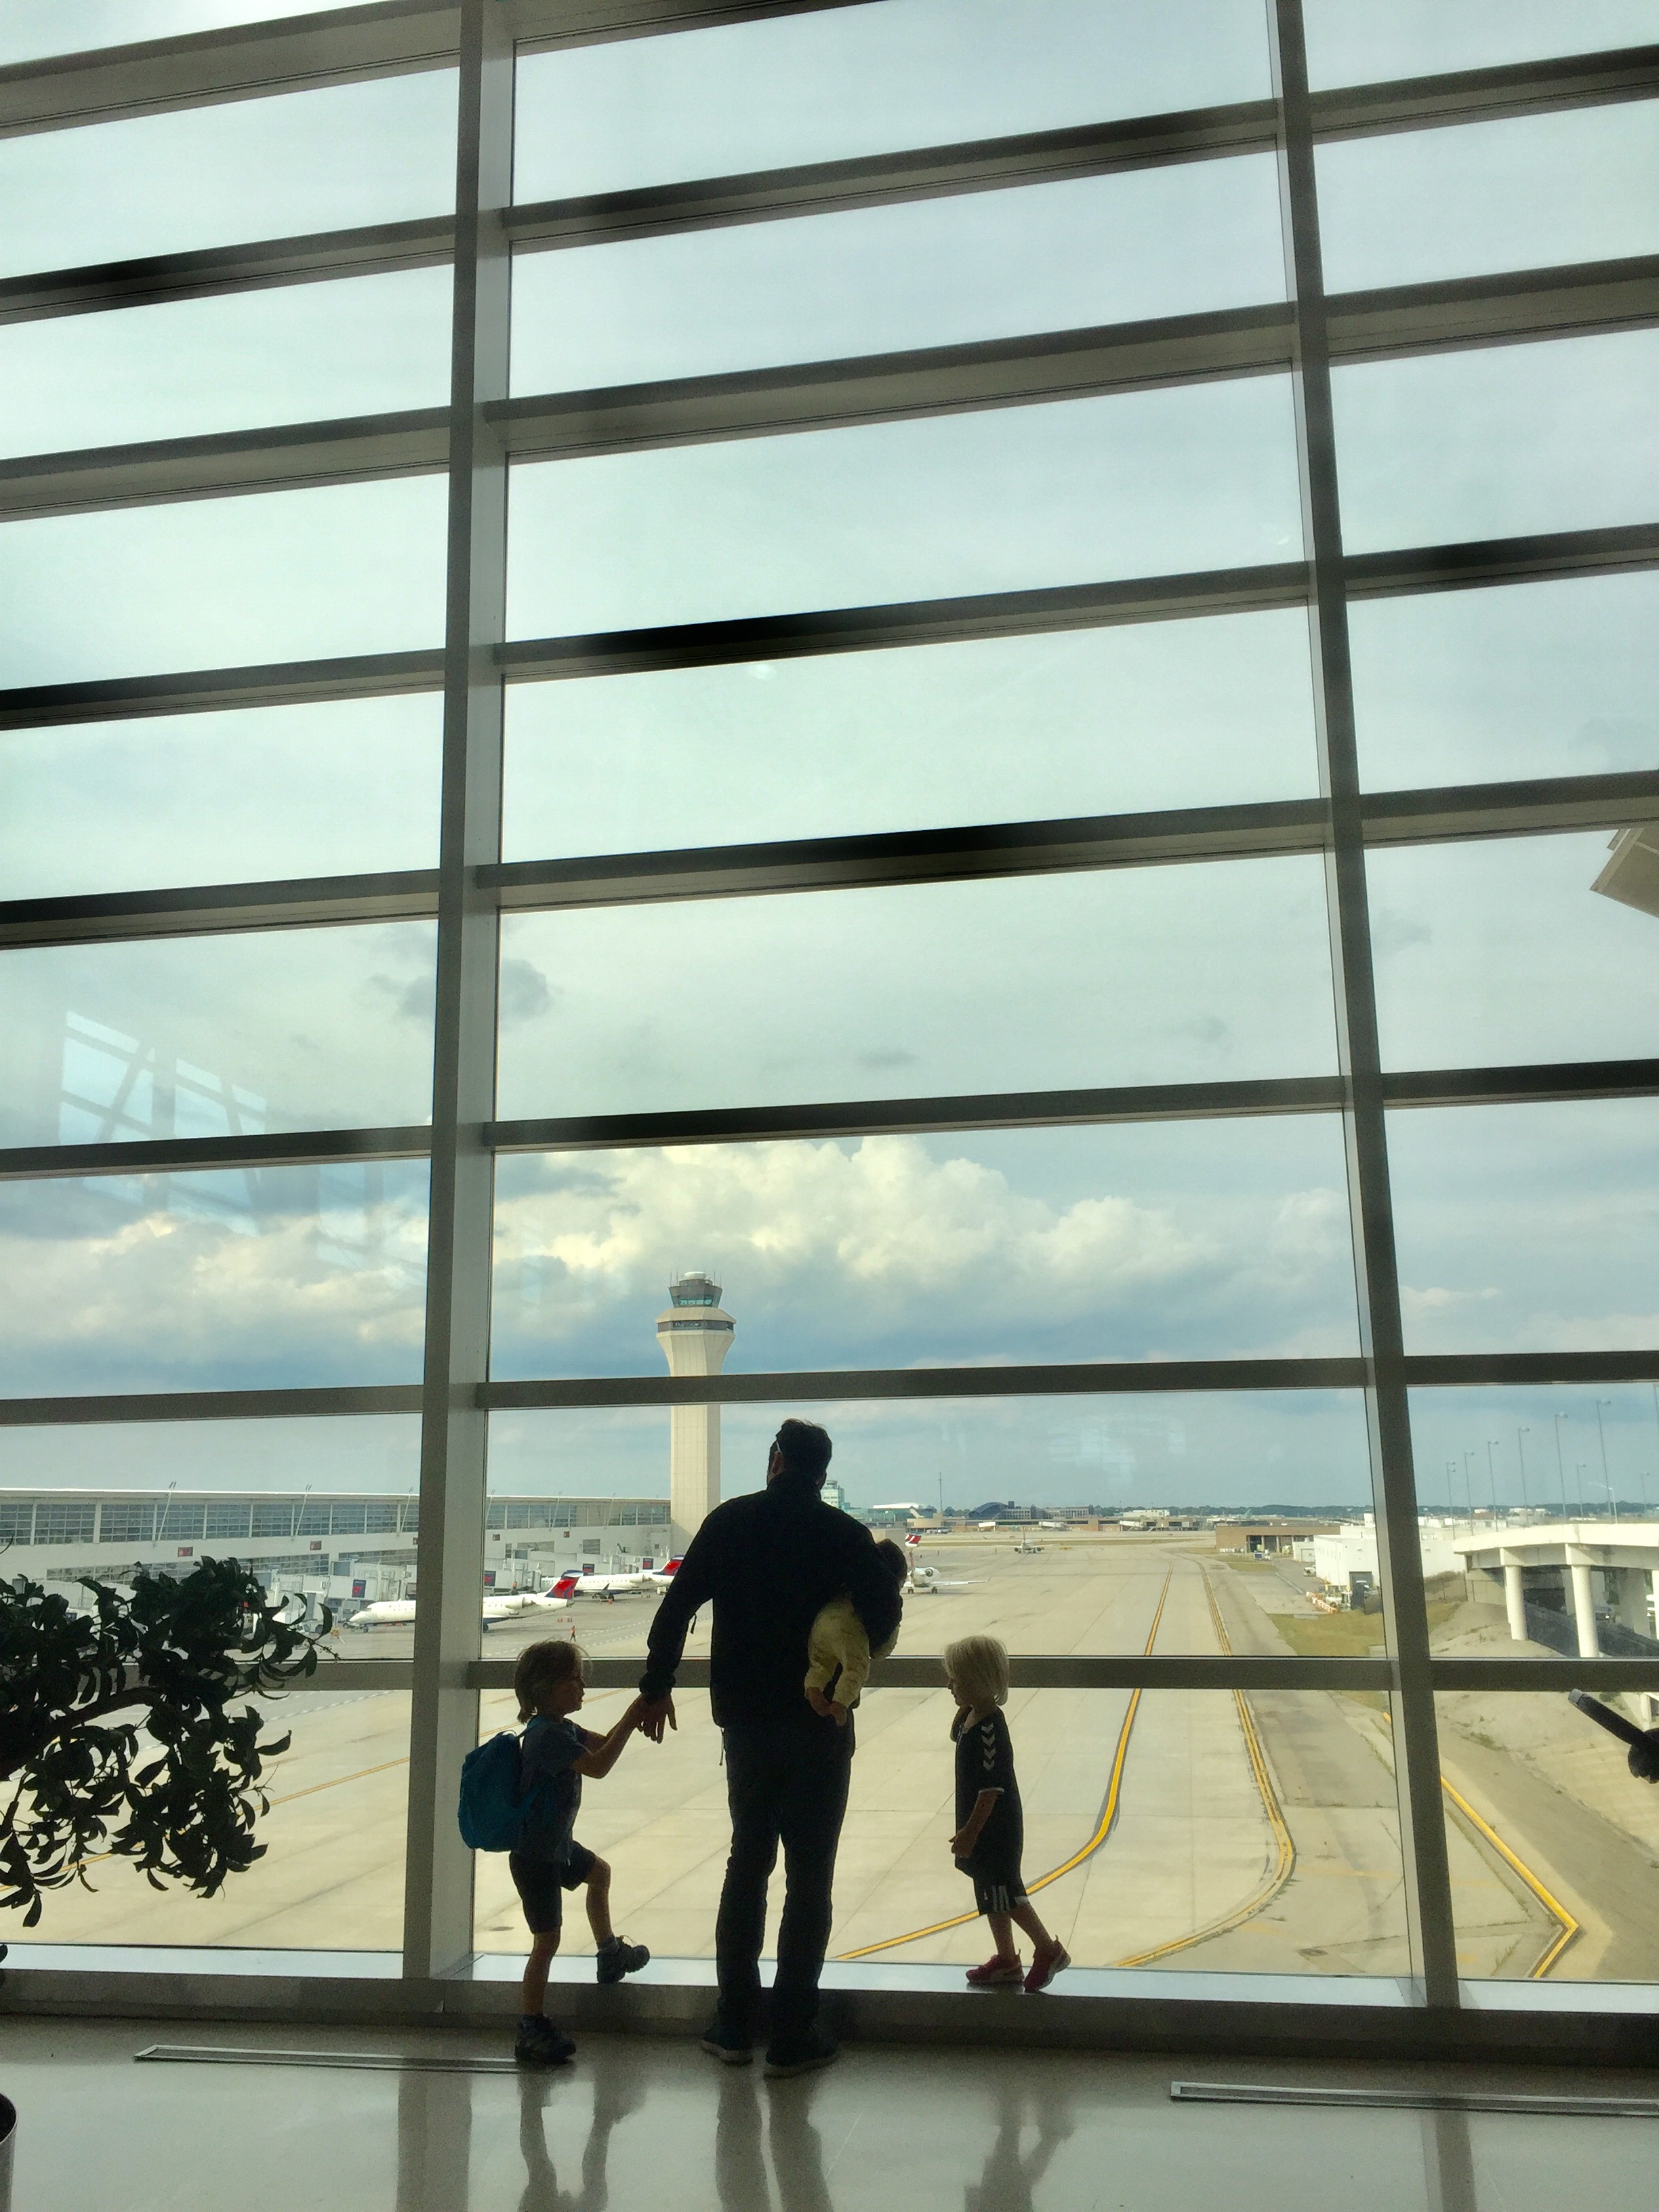 James with the kids looking out airport window